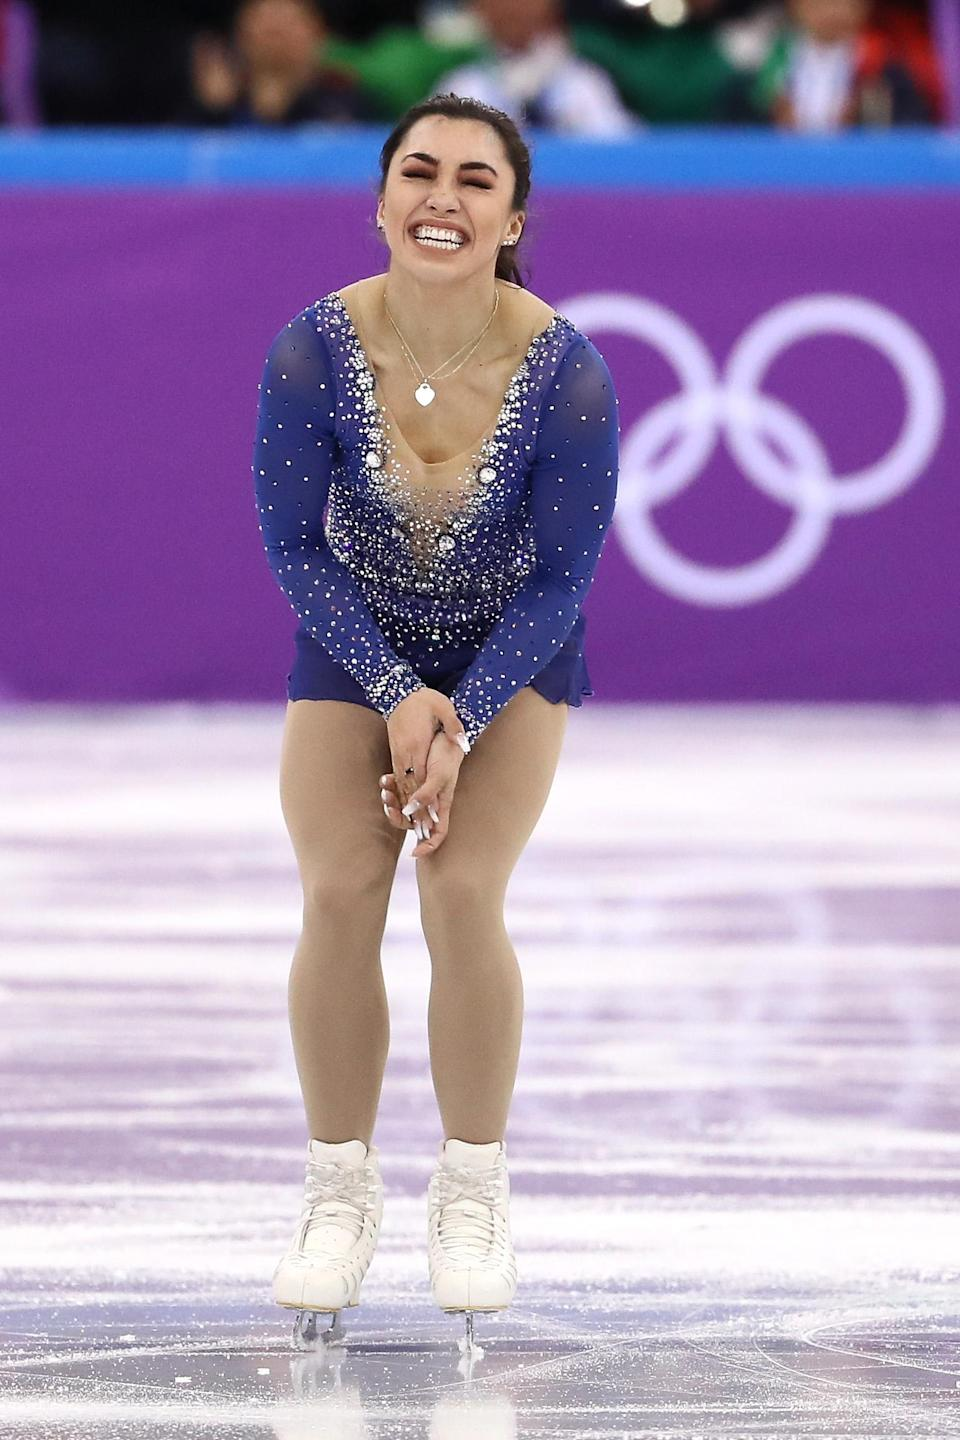 <p>Gabrielle Daleman of Canada reacts after her routine in the Figure Skating Team Event ? Ladies? Single Free Skating on day three of the PyeongChang 2018 Winter Olympic Games at Gangneung Ice Arena on February 12, 2018 in Gangneung, South Korea. (Photo by Jamie Squire/Getty Images) </p>